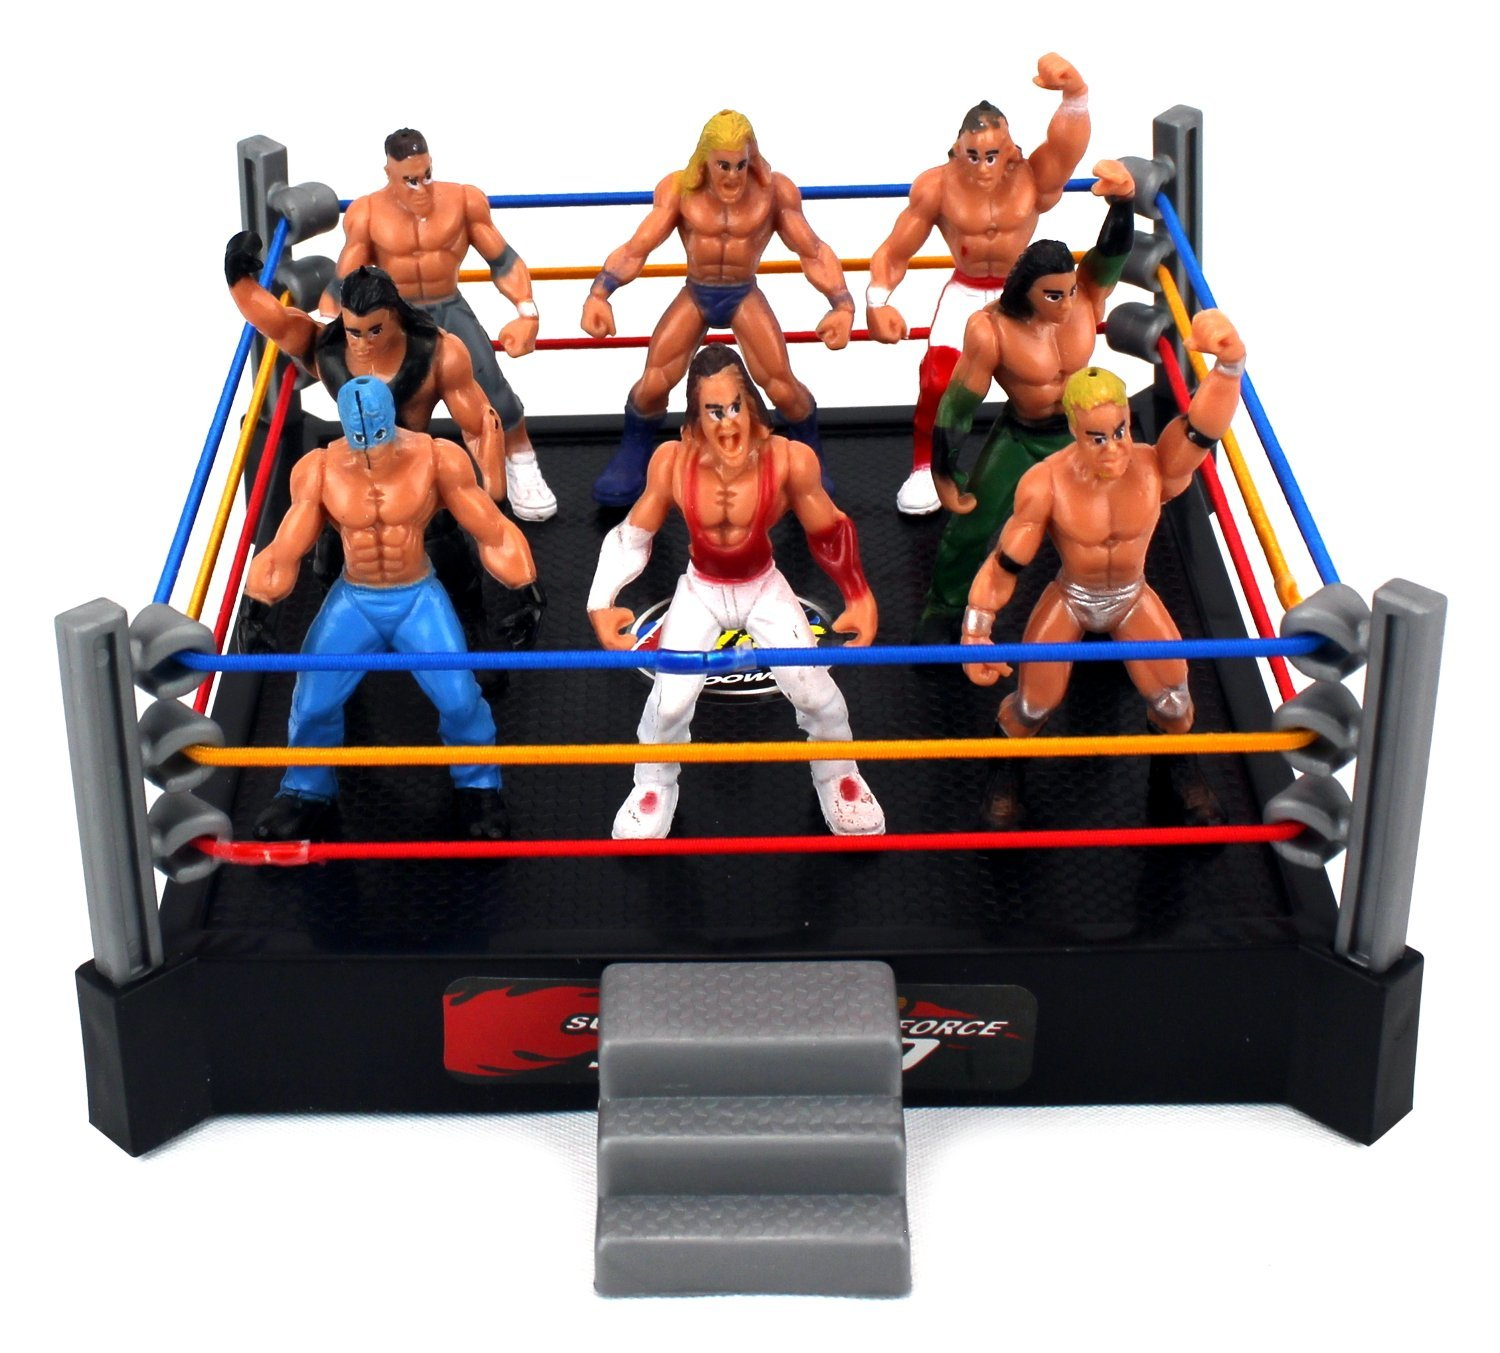 VT Mini Combat Action Wrestling Toy Figure Play Set w  Ring, 8 Toy Figures by Velocity Toys